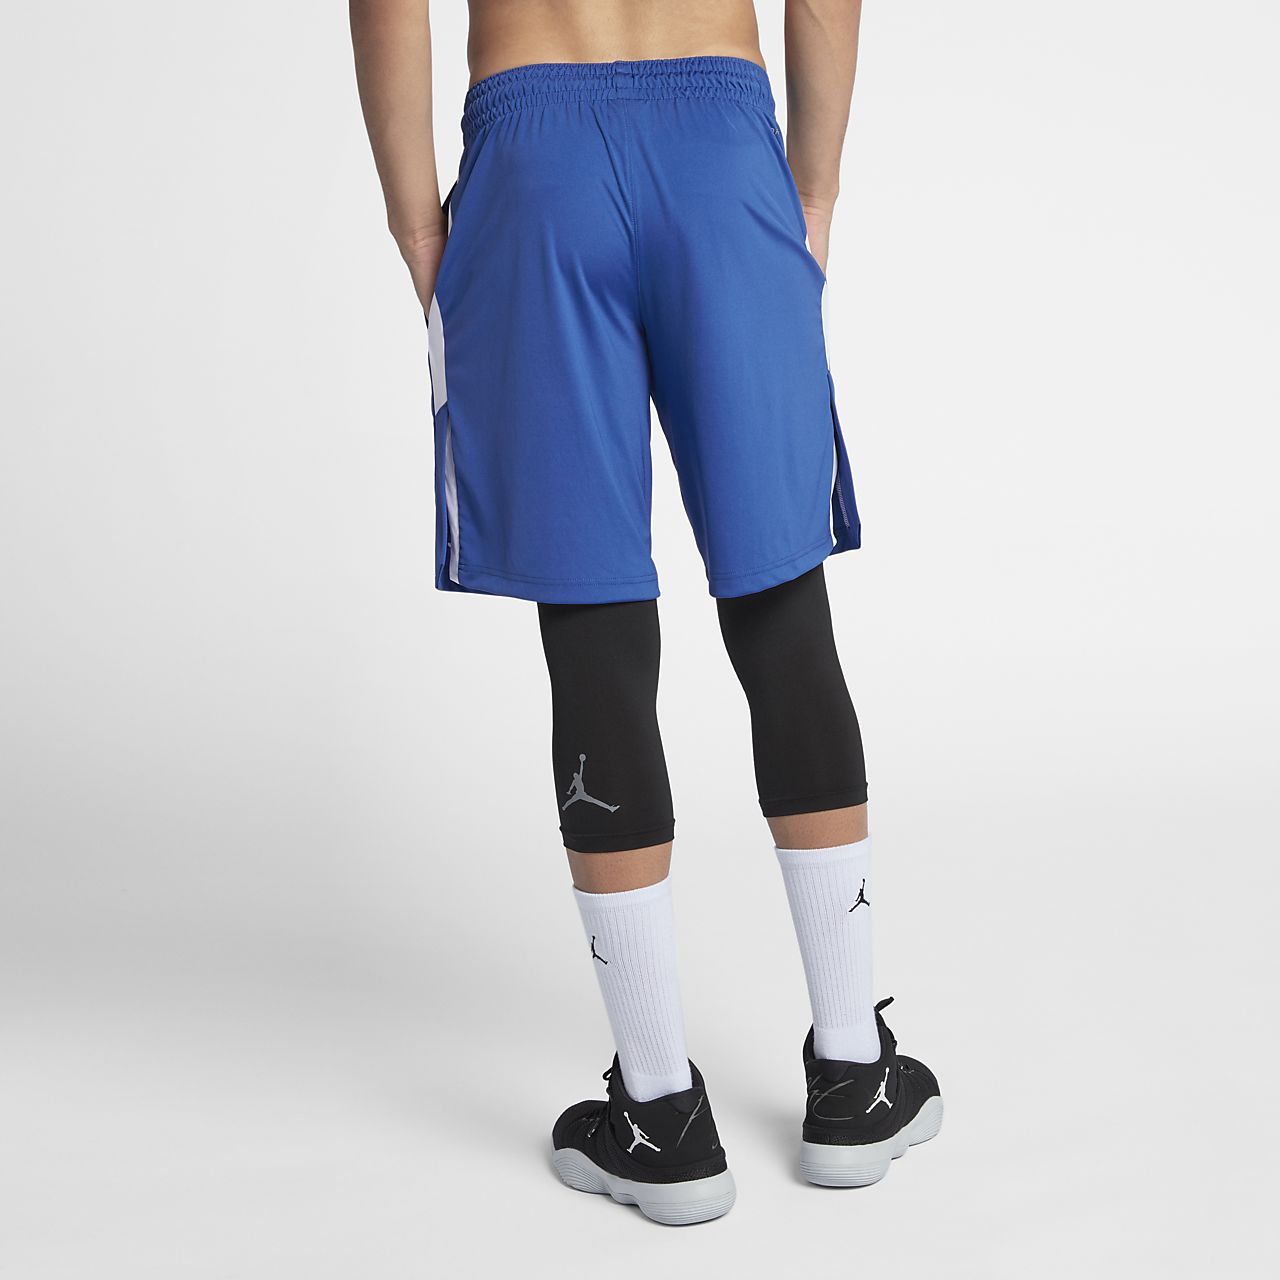 d5dd05d18d89 Jordan Dri-FIT 23 Alpha Men s Training Shorts. Nike.com SE